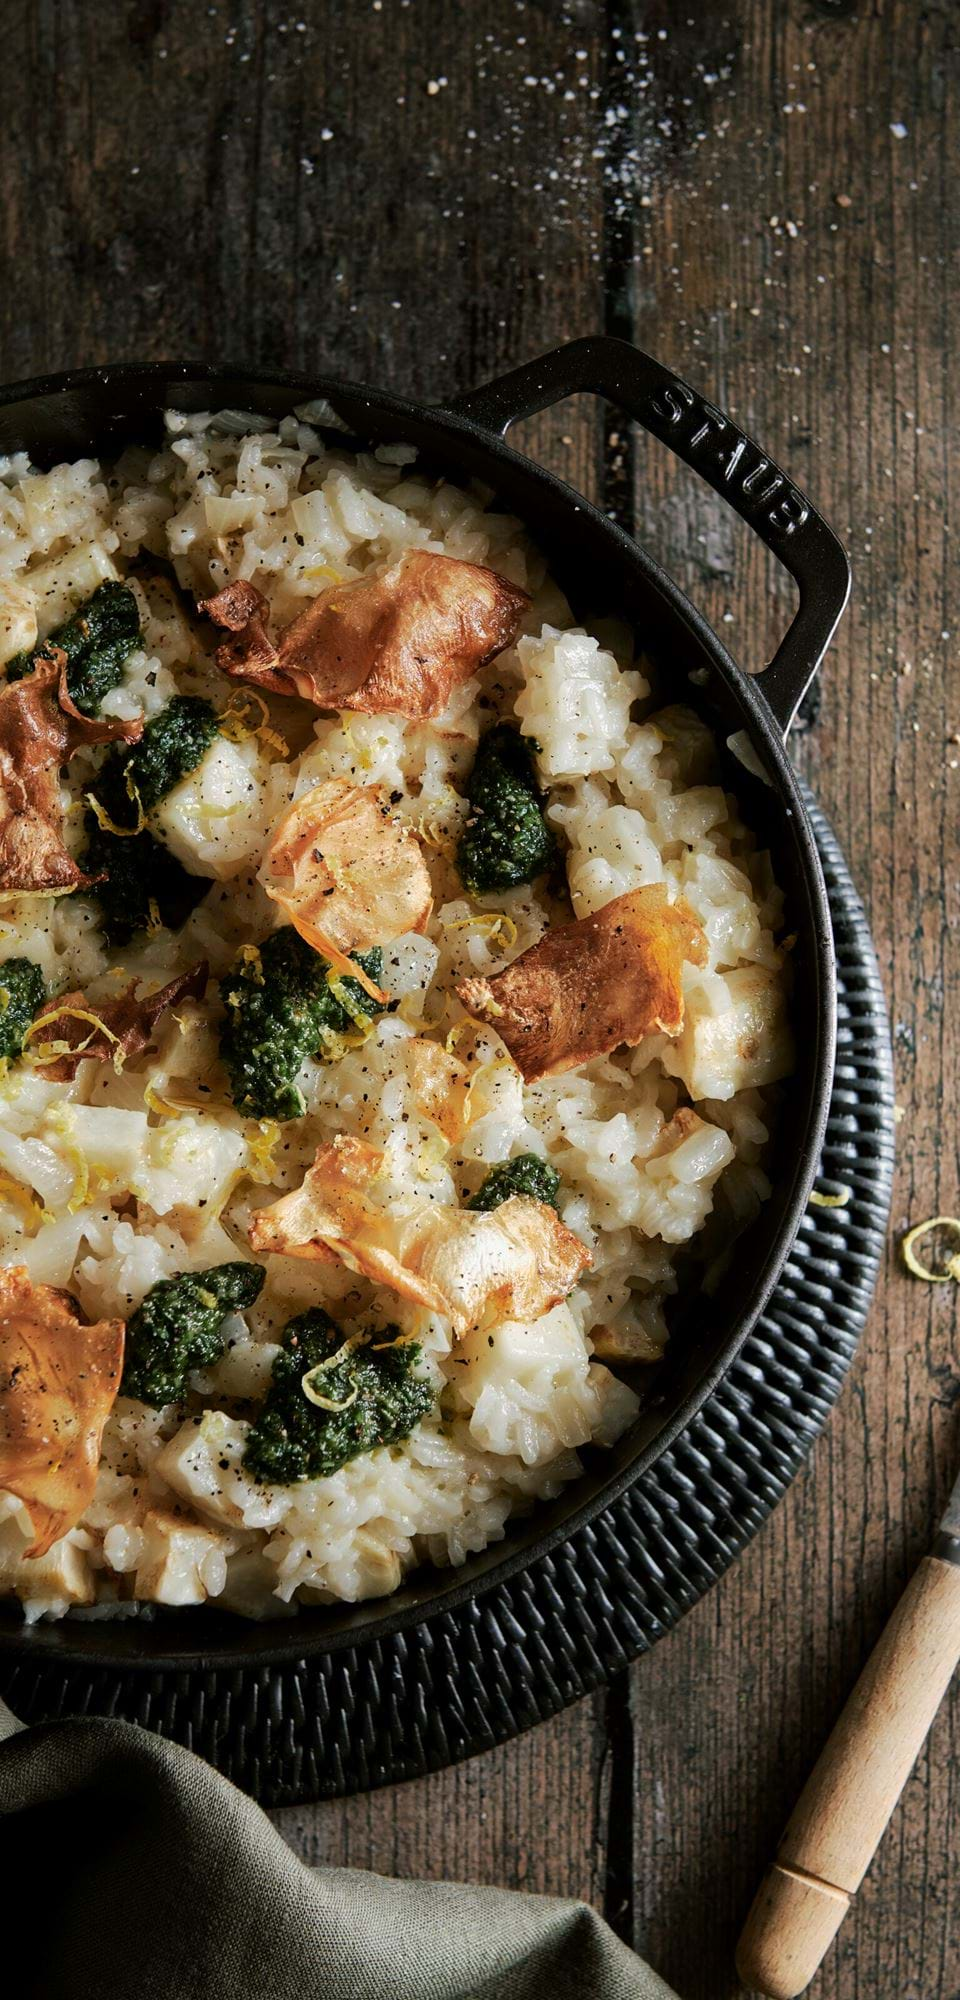 Baked celeriac risotto